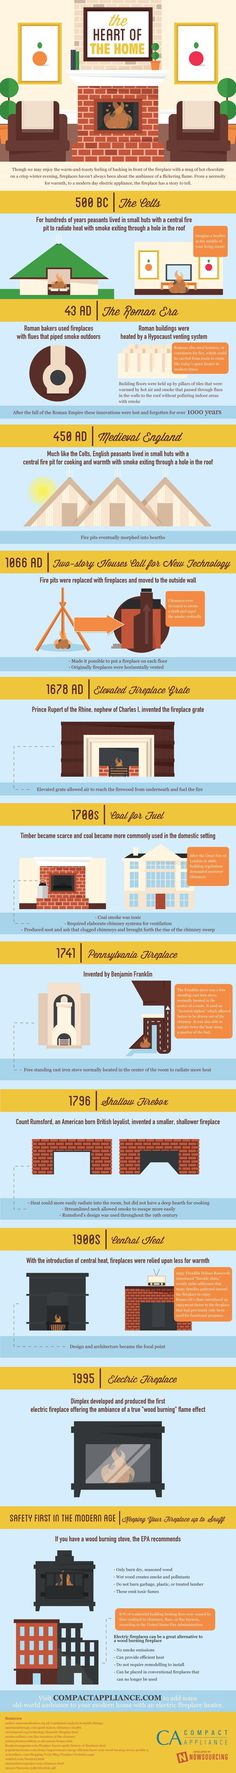 The fireplace as we know it has undergone quite an evolution.  Learn more from this infographic.